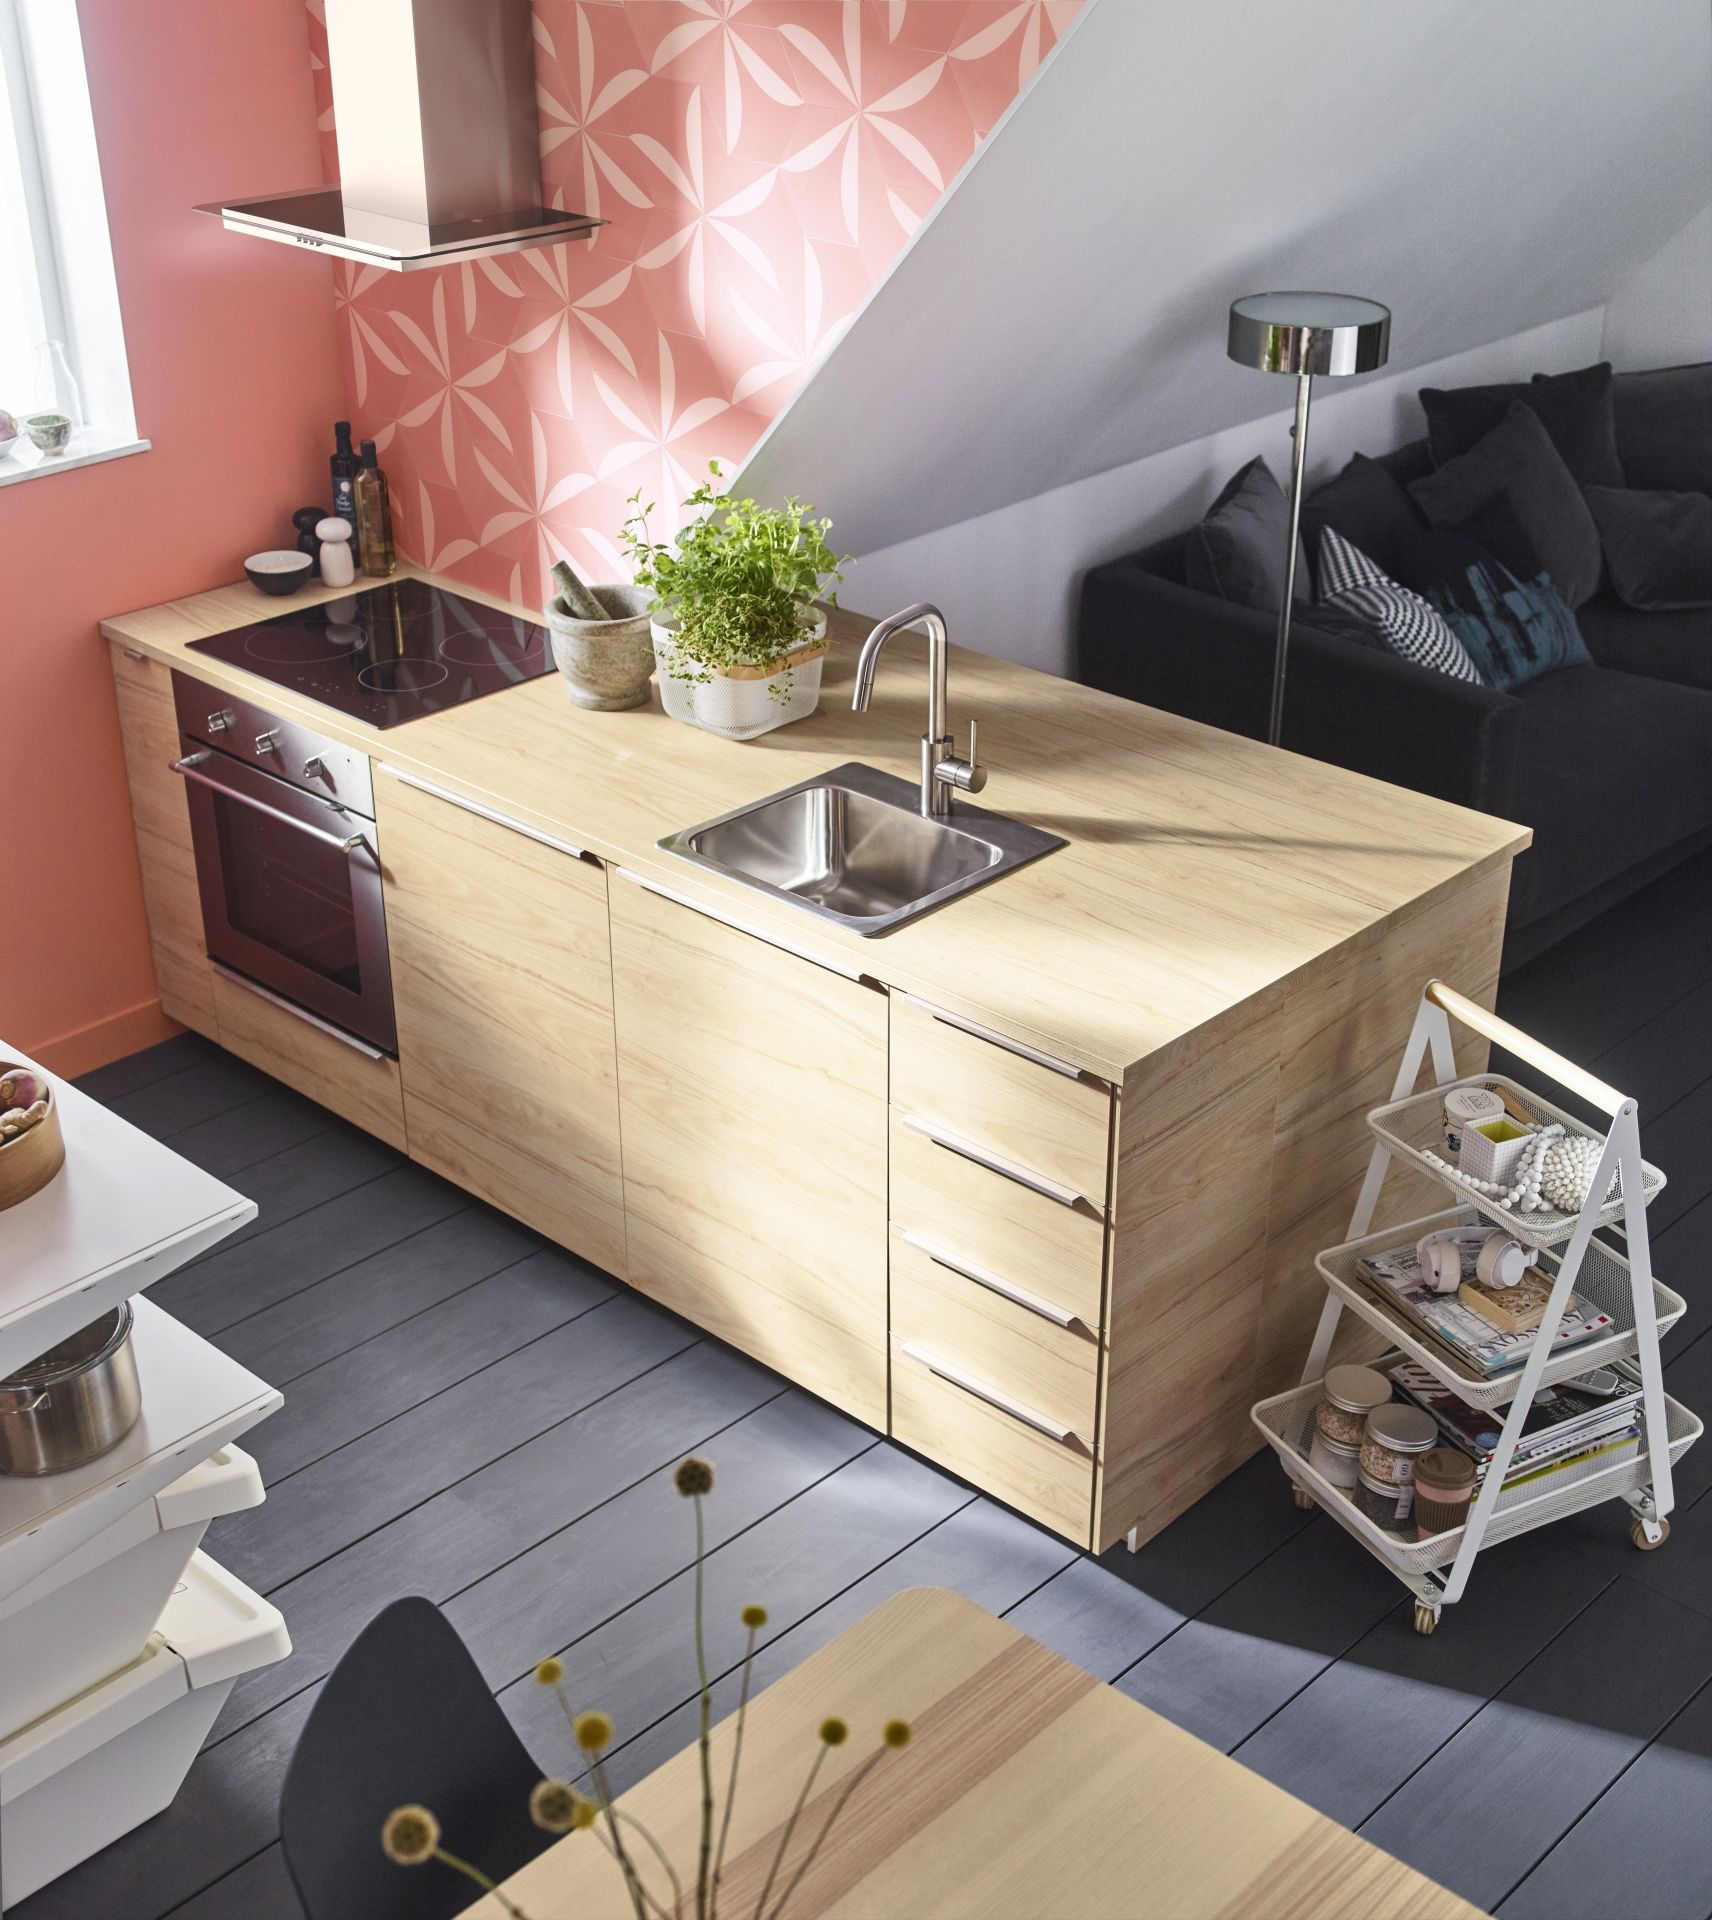 metod askersund keuken ikea ikeanl ikeanederland veelzijdig fronten deuren kasten opbergen. Black Bedroom Furniture Sets. Home Design Ideas